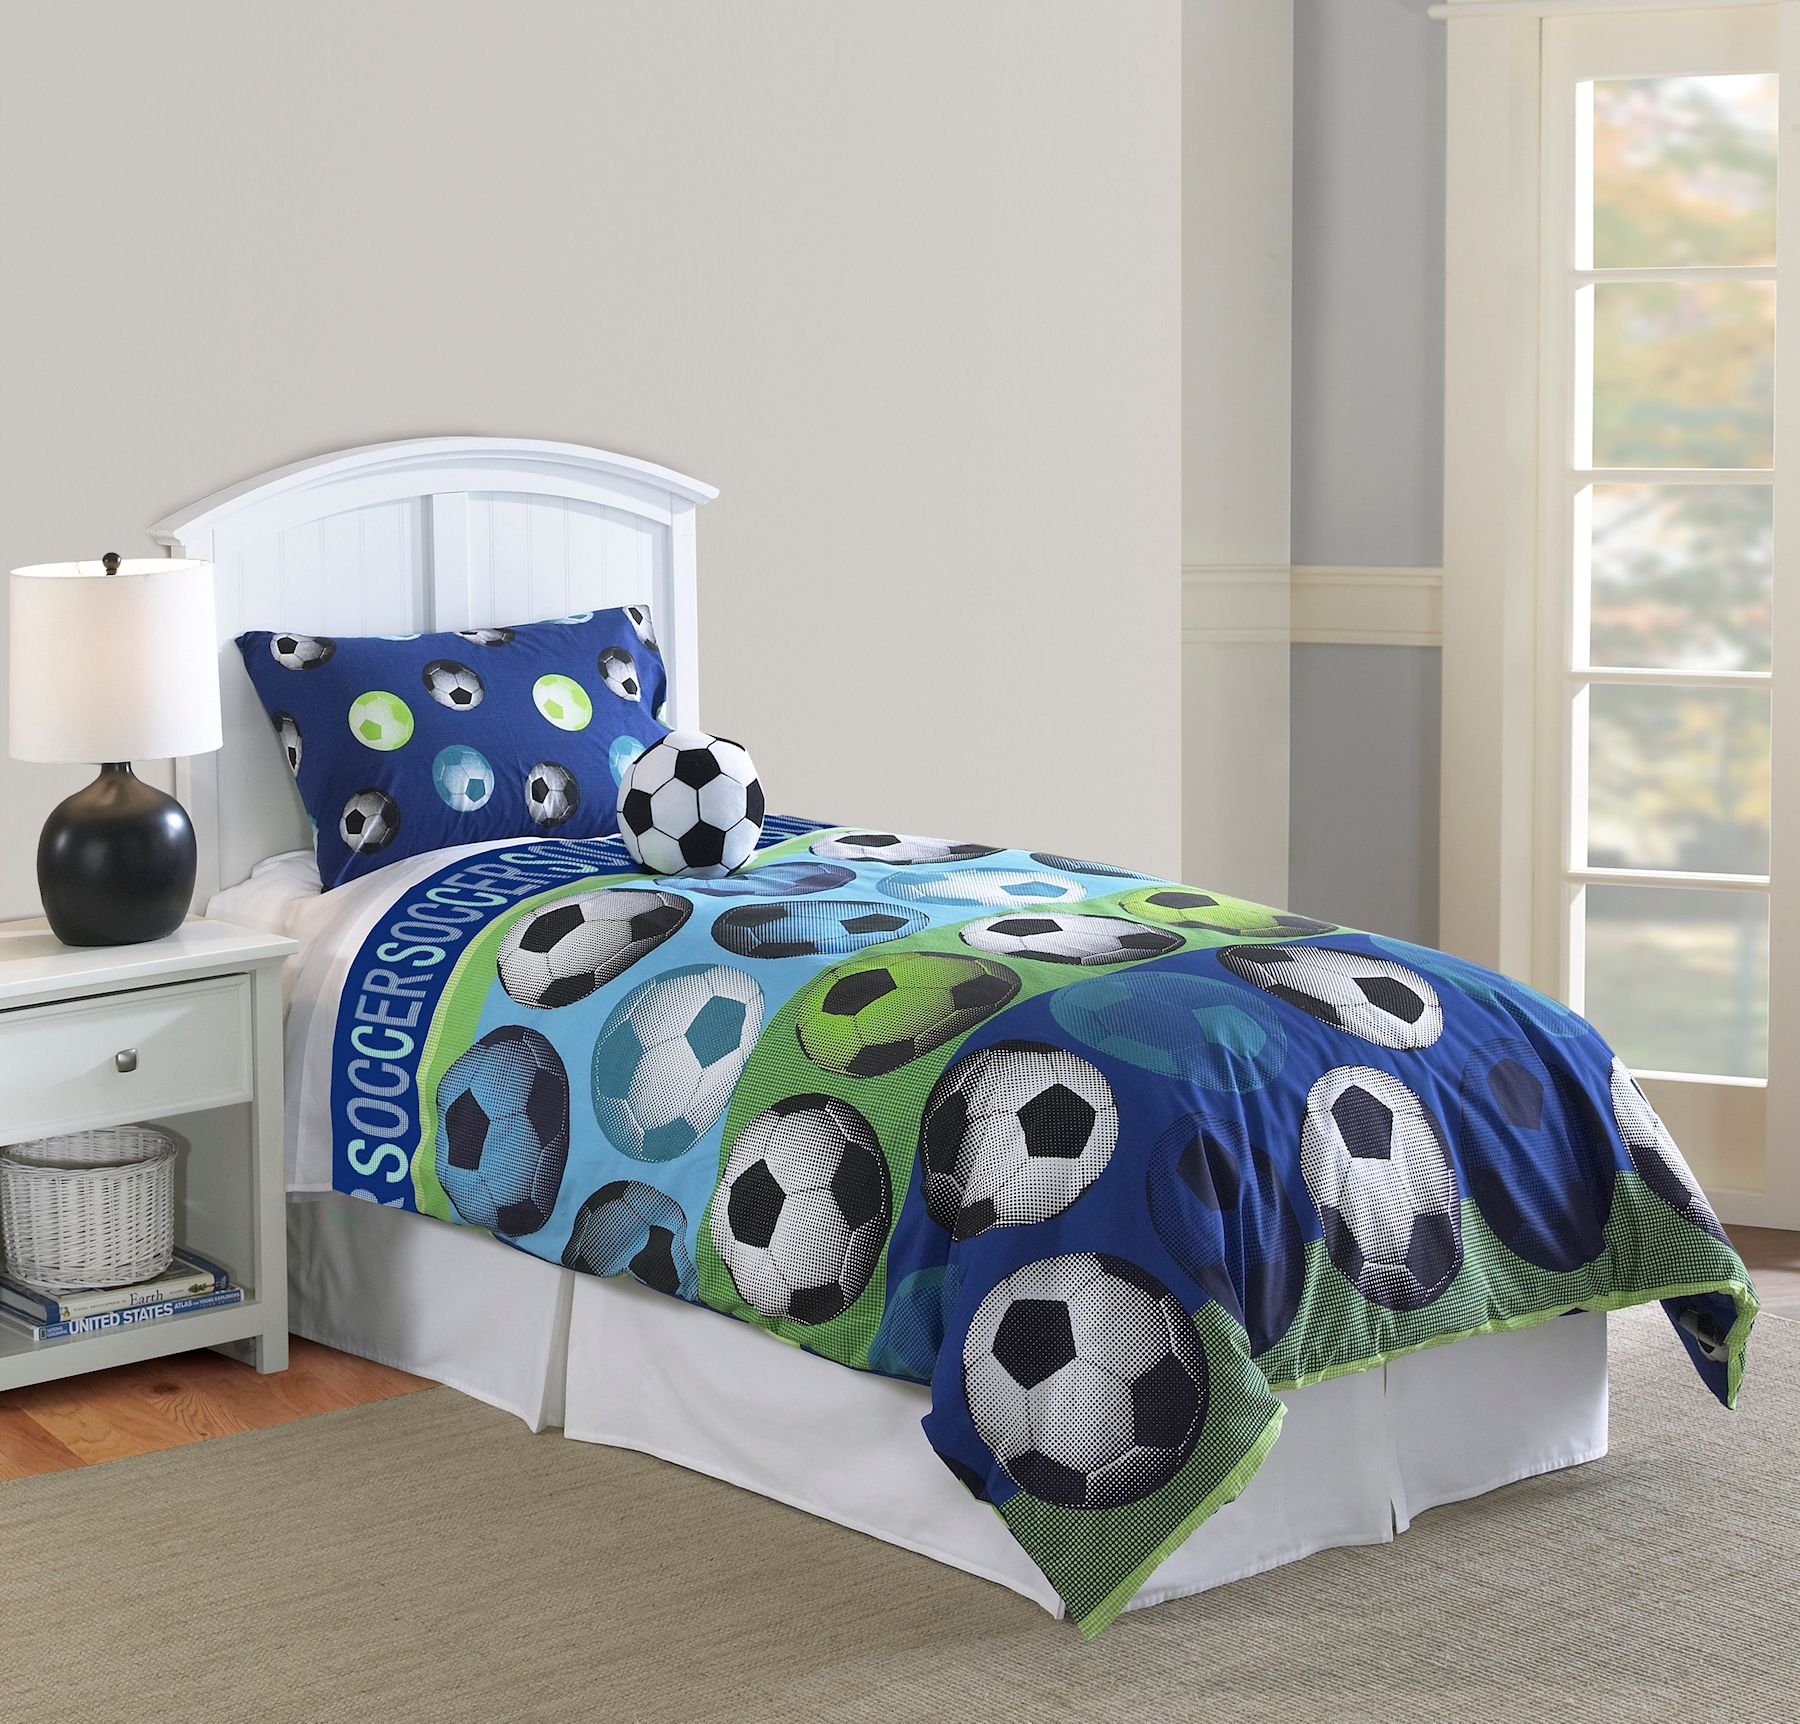 Soccer Bedroom Blue Green Soccer Ball Bedding Twin Full Queen Comforter Set With